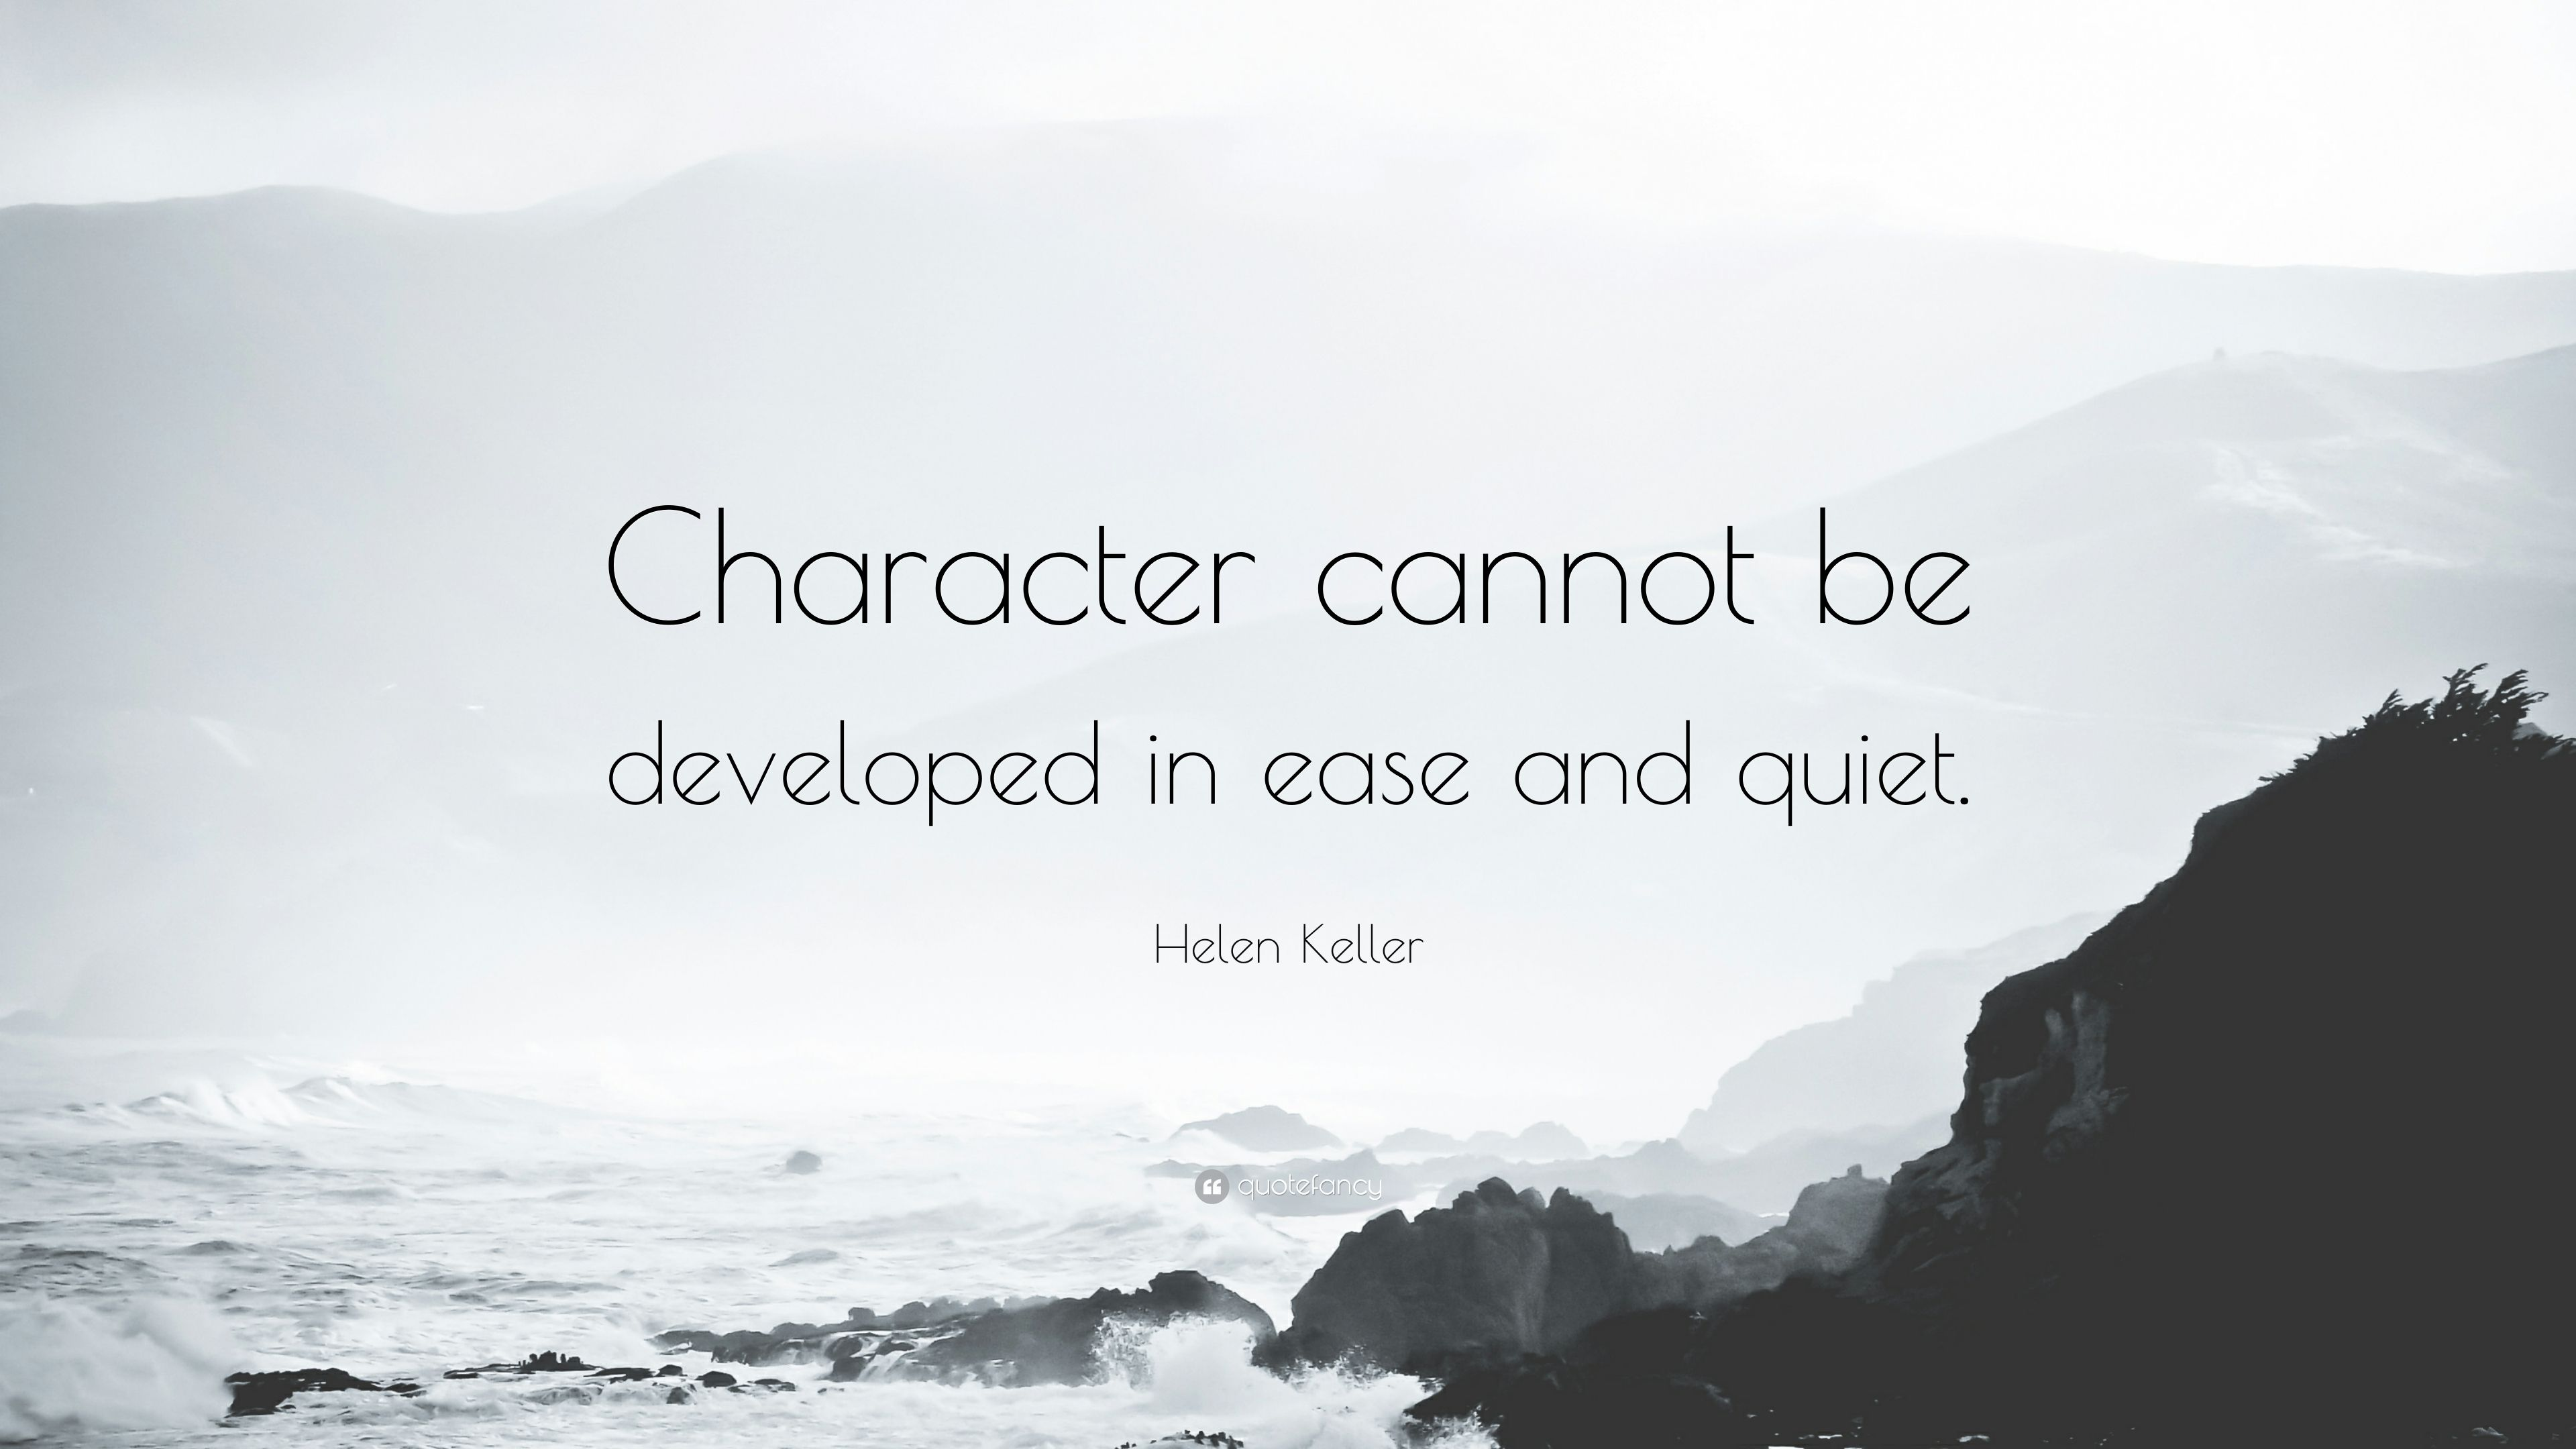 Helen keller quote character cannot be developed in ease and quiet helen keller quote character cannot be developed in ease and quiet thecheapjerseys Image collections